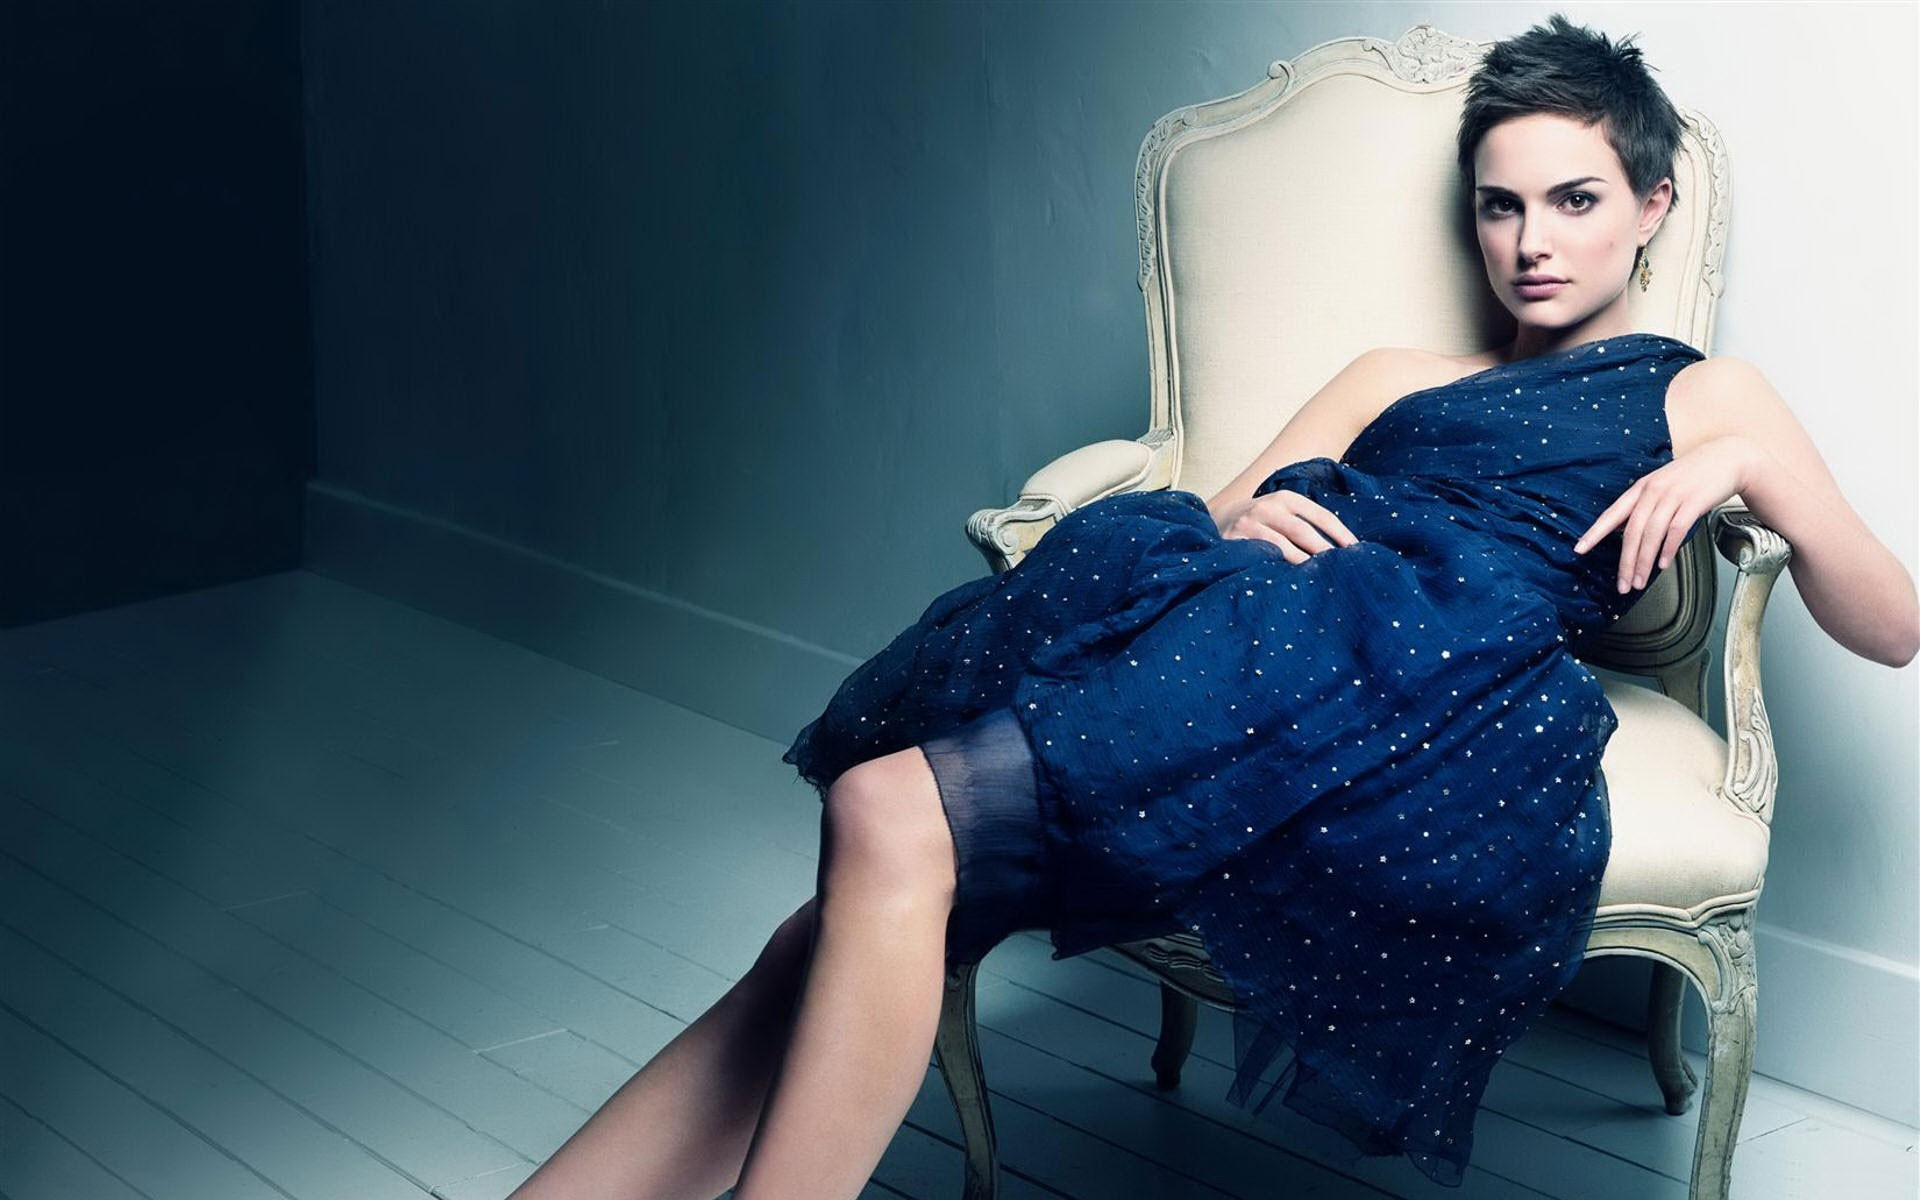 Natalie Portman on Photoshoot